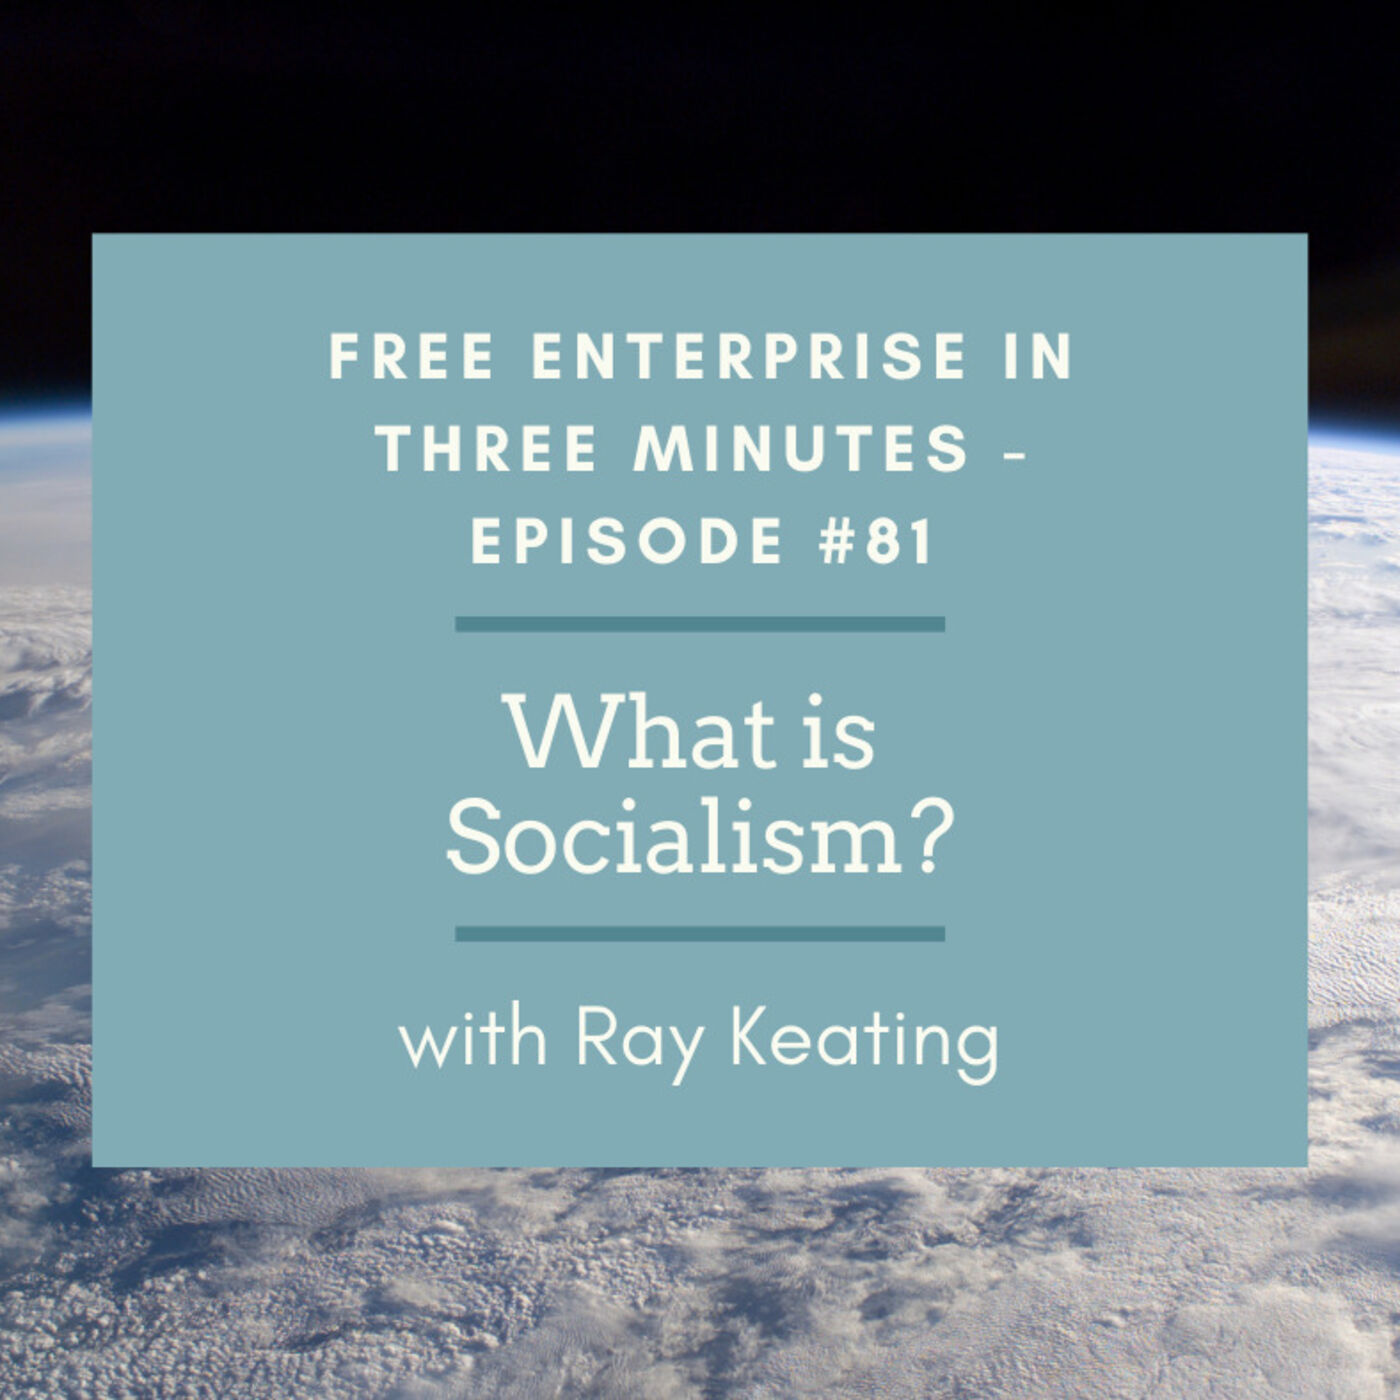 Episode #81: What is Socialism?